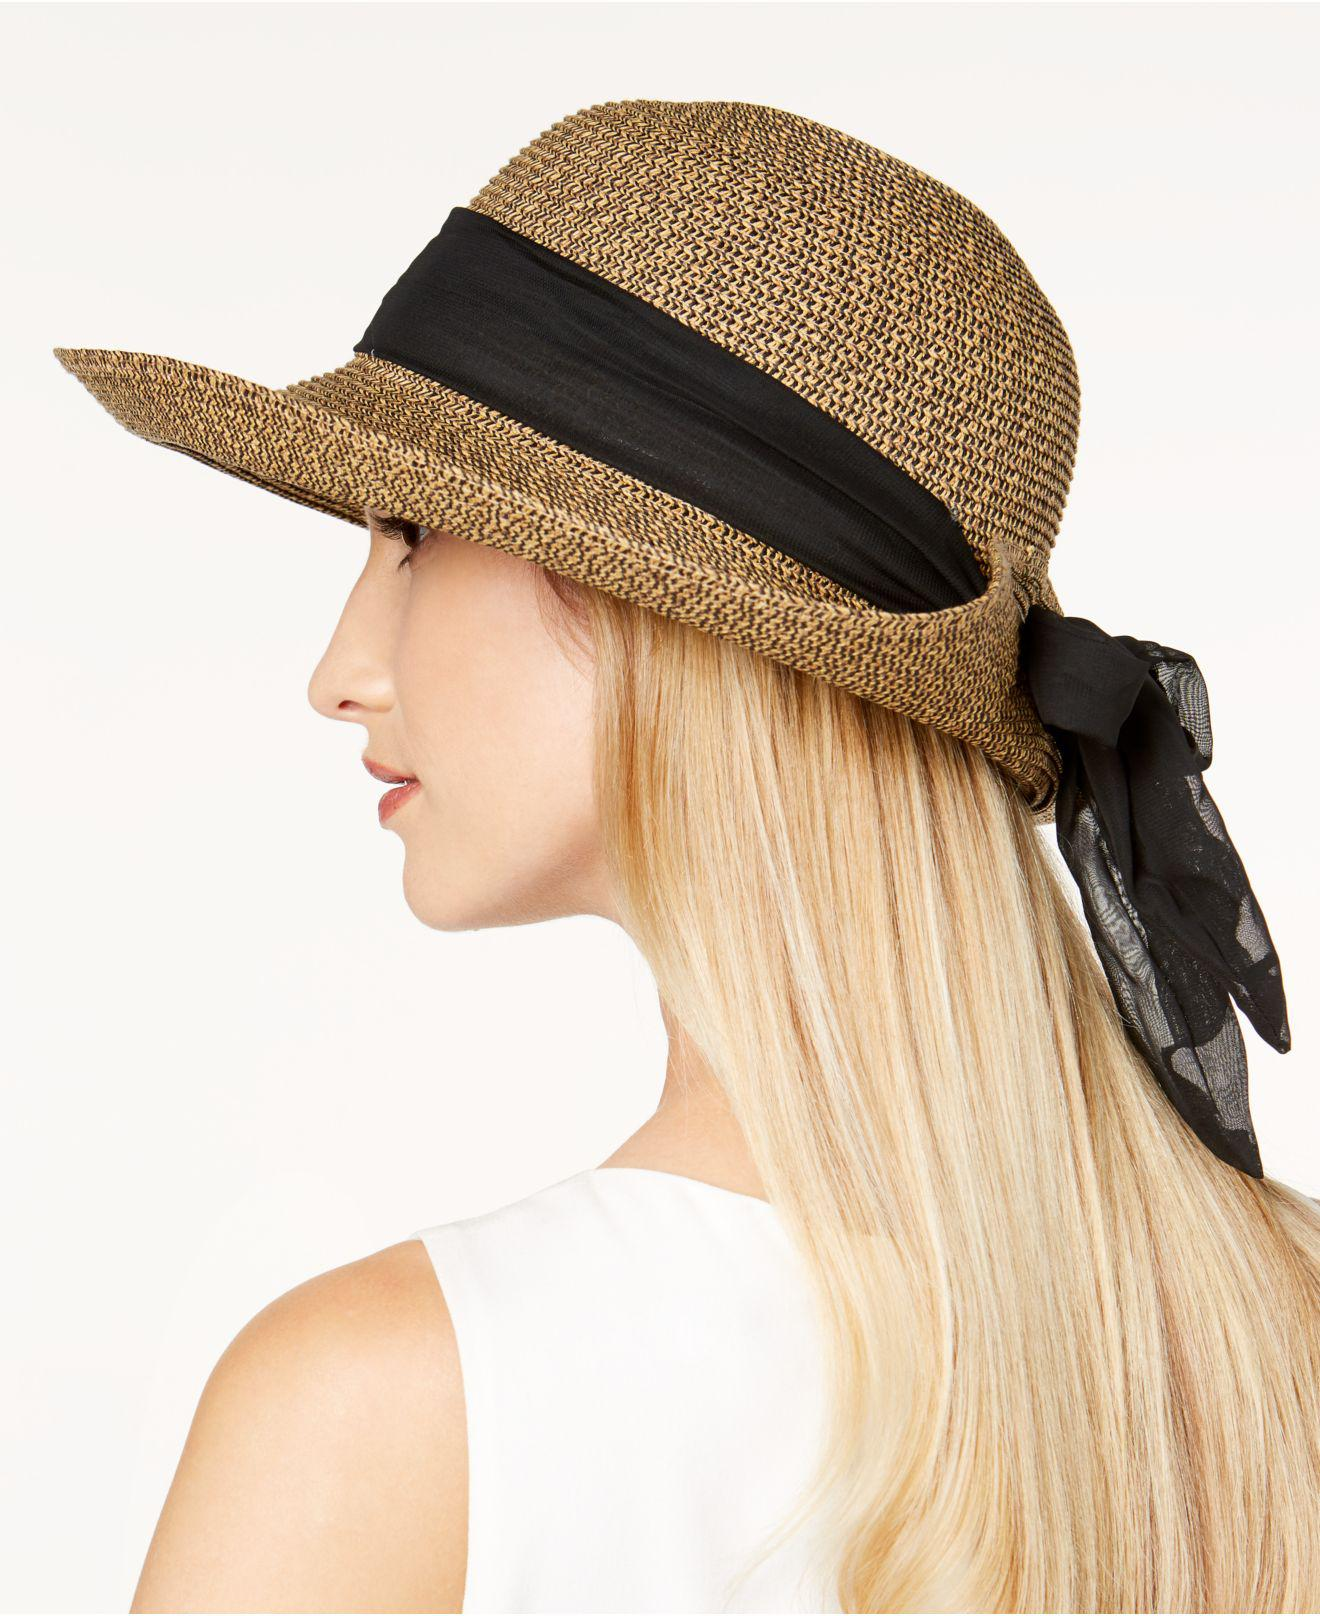 f0b0eea8d9f Nine West - Multicolor Packable Bow Scarf Floppy Sun Hat - Lyst. View  fullscreen